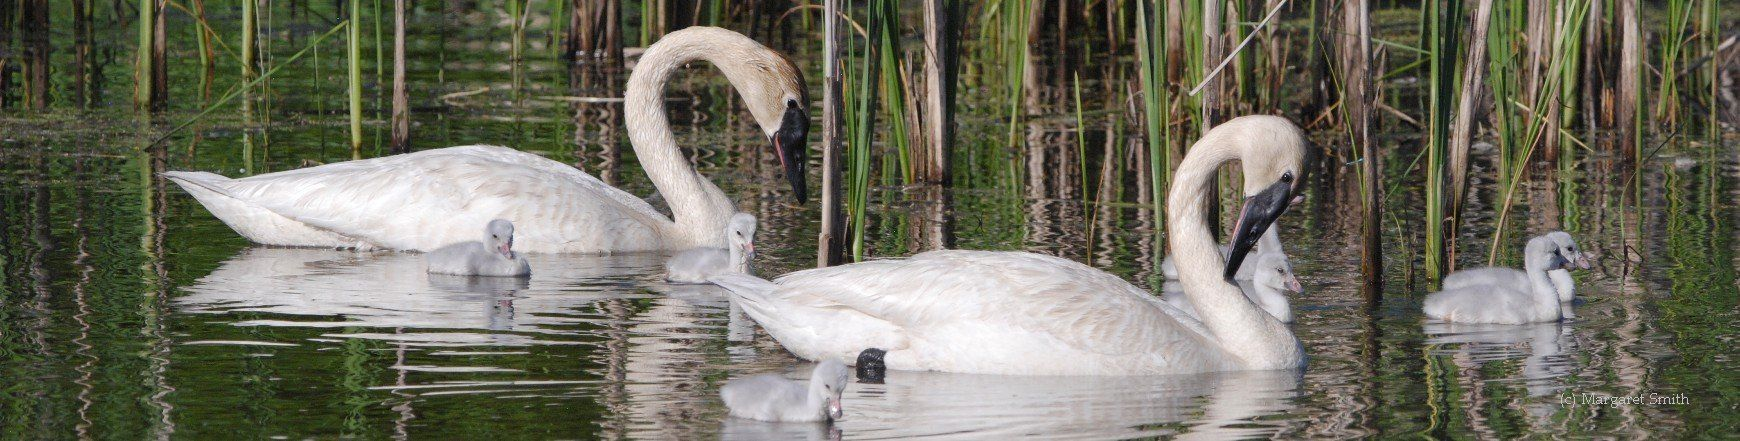 Discover the fascinating stories of efforts across North America to bring back the Trumpeter Swan to areas where it was missing for decades